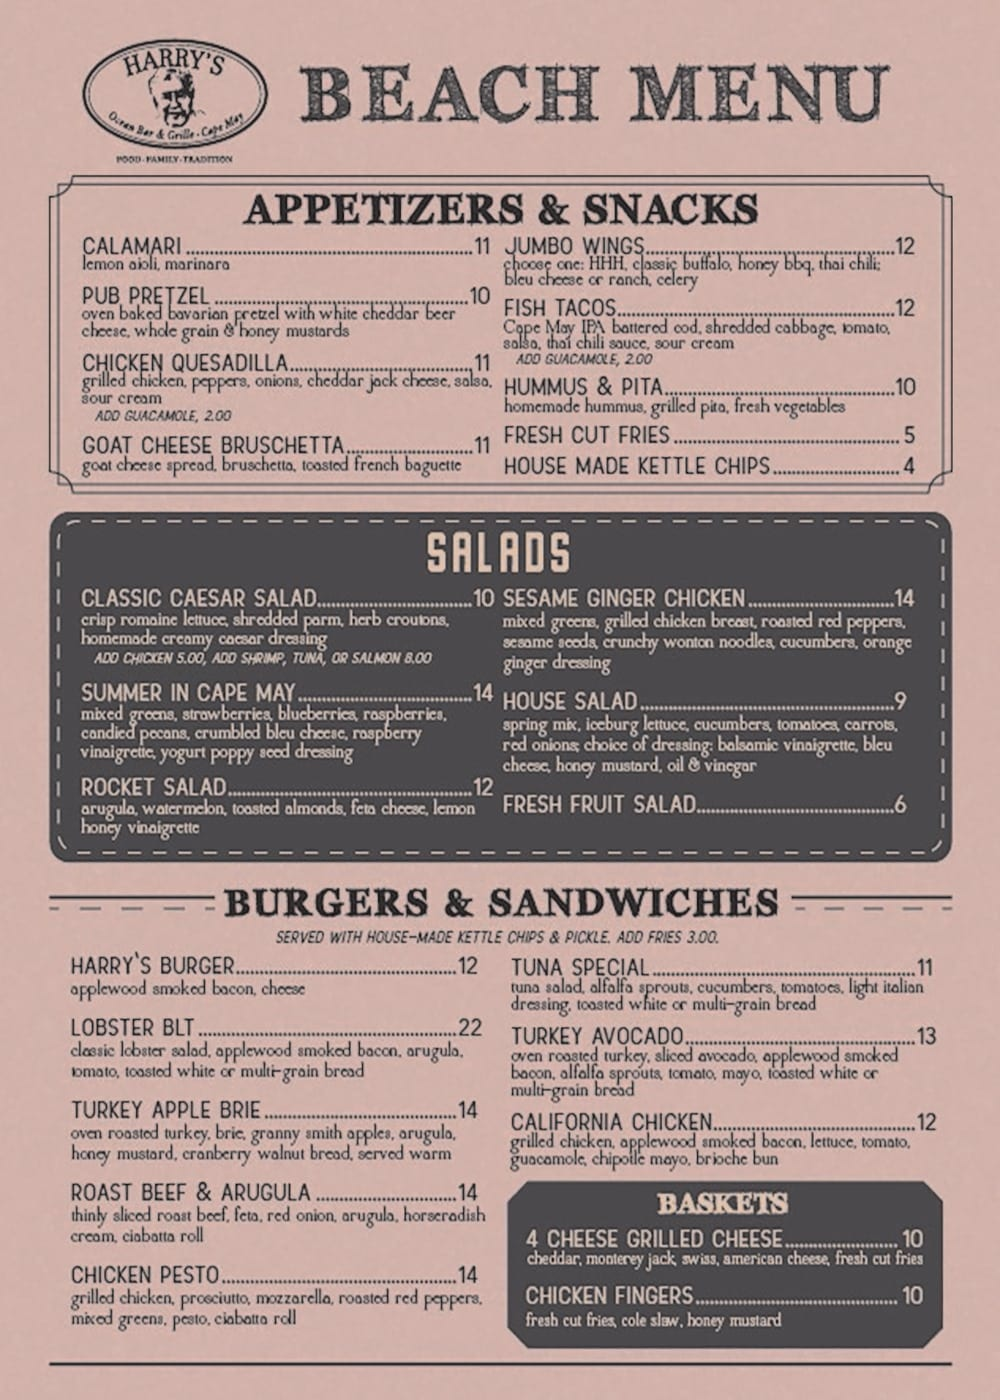 Appetizers & Snacks Menu